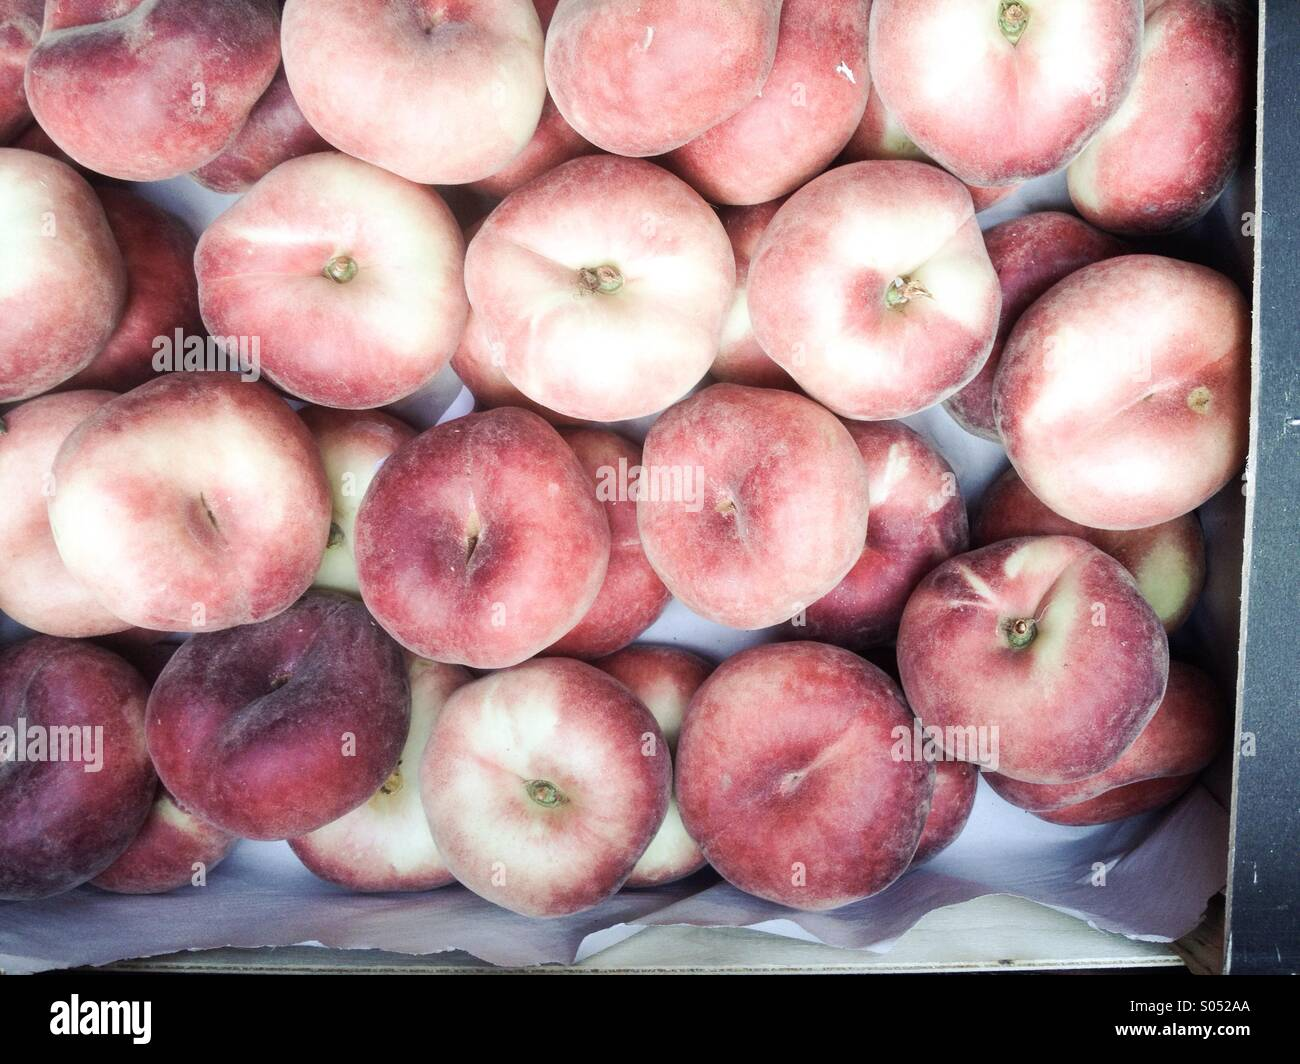 Belly button peaches at he market - Stock Image